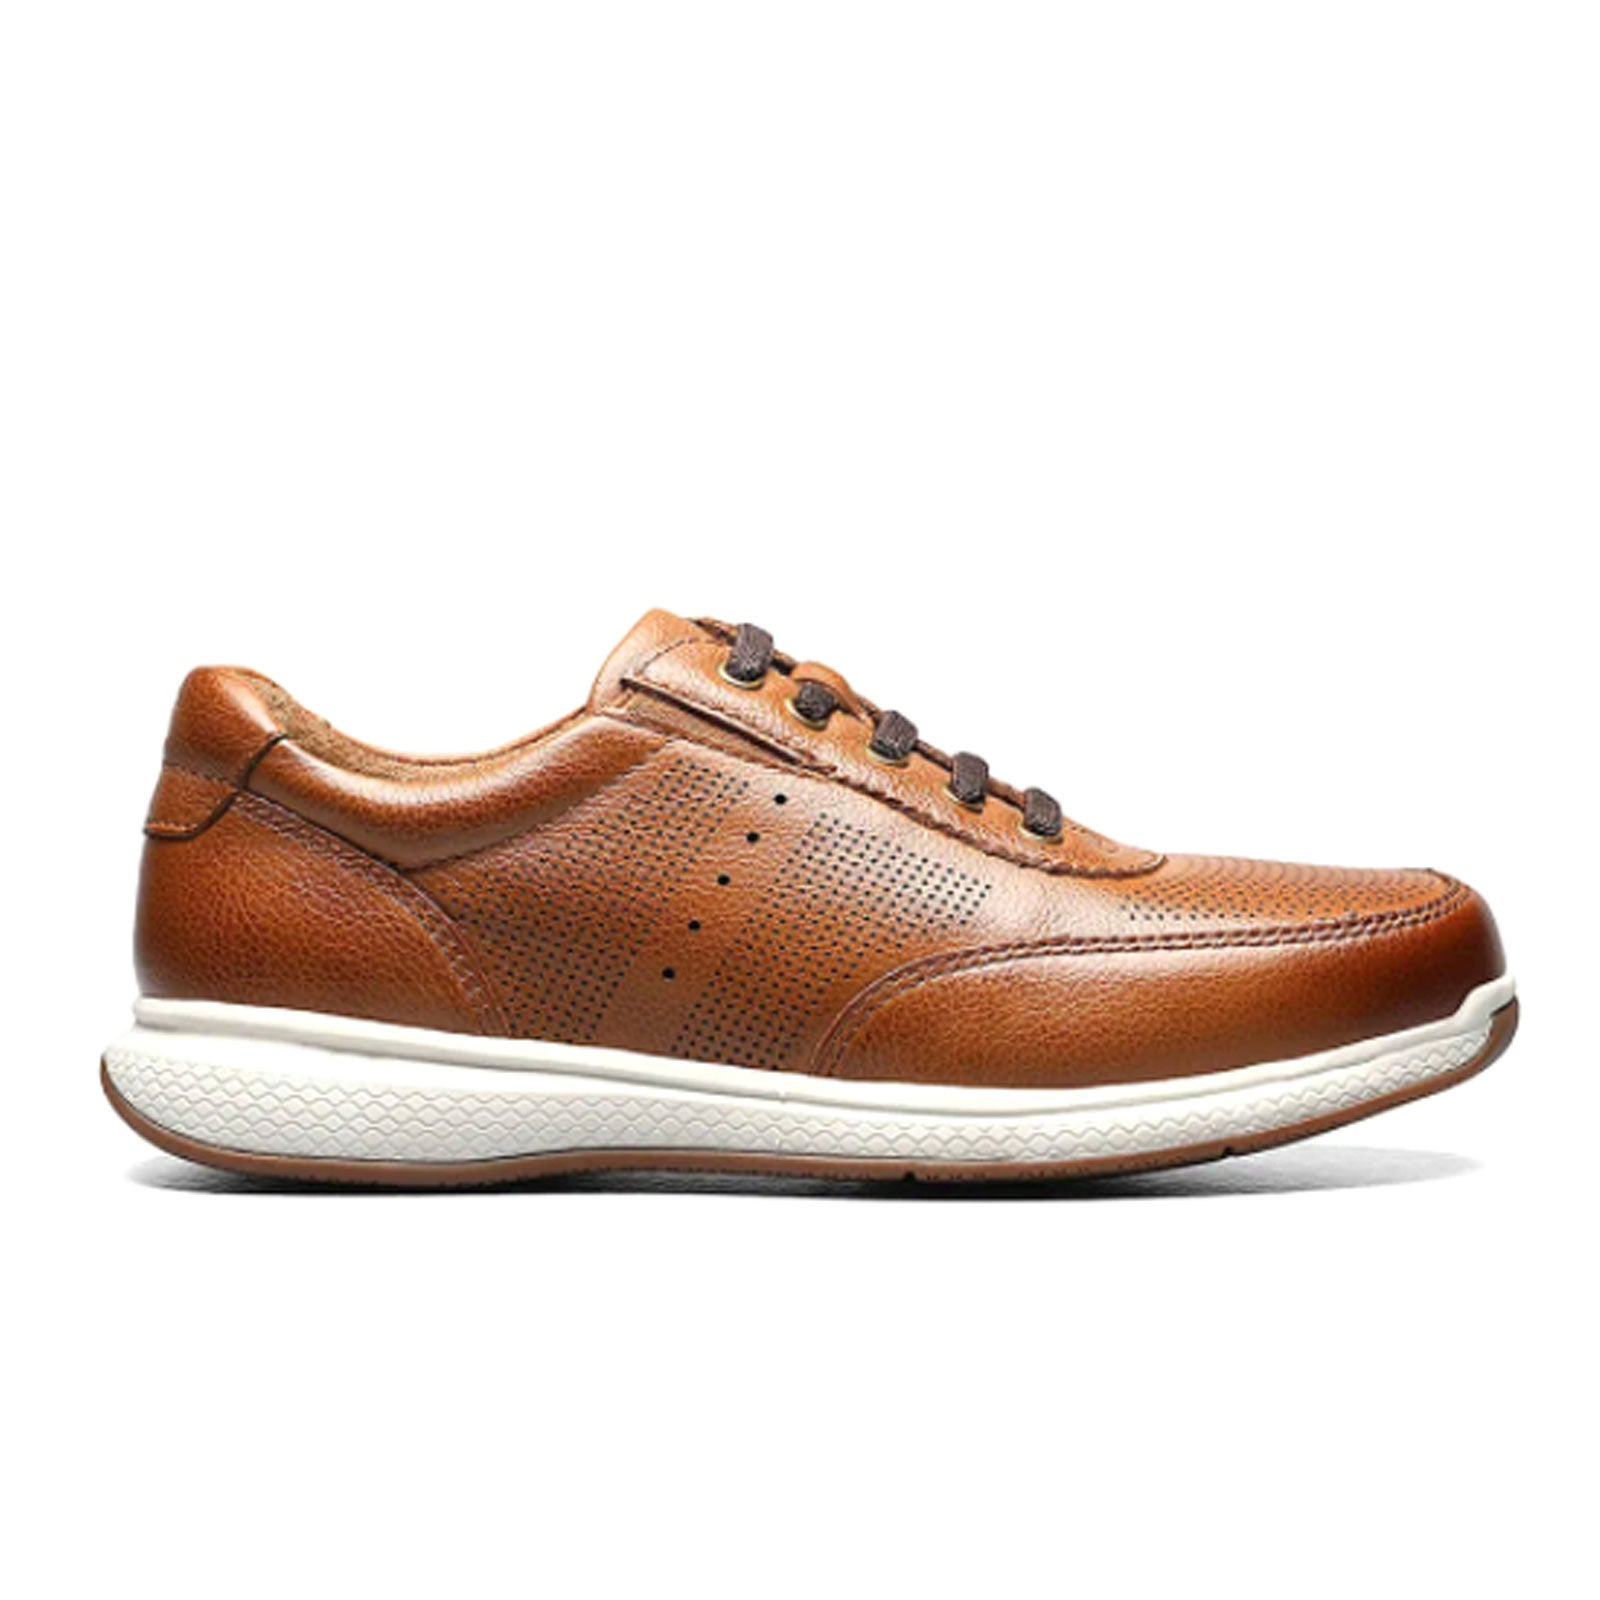 Florsheim Great Lakes Sport (Children) - Cognac Milled Leather Dress/Casual|Sneakers - The Heel Shoe Fitters